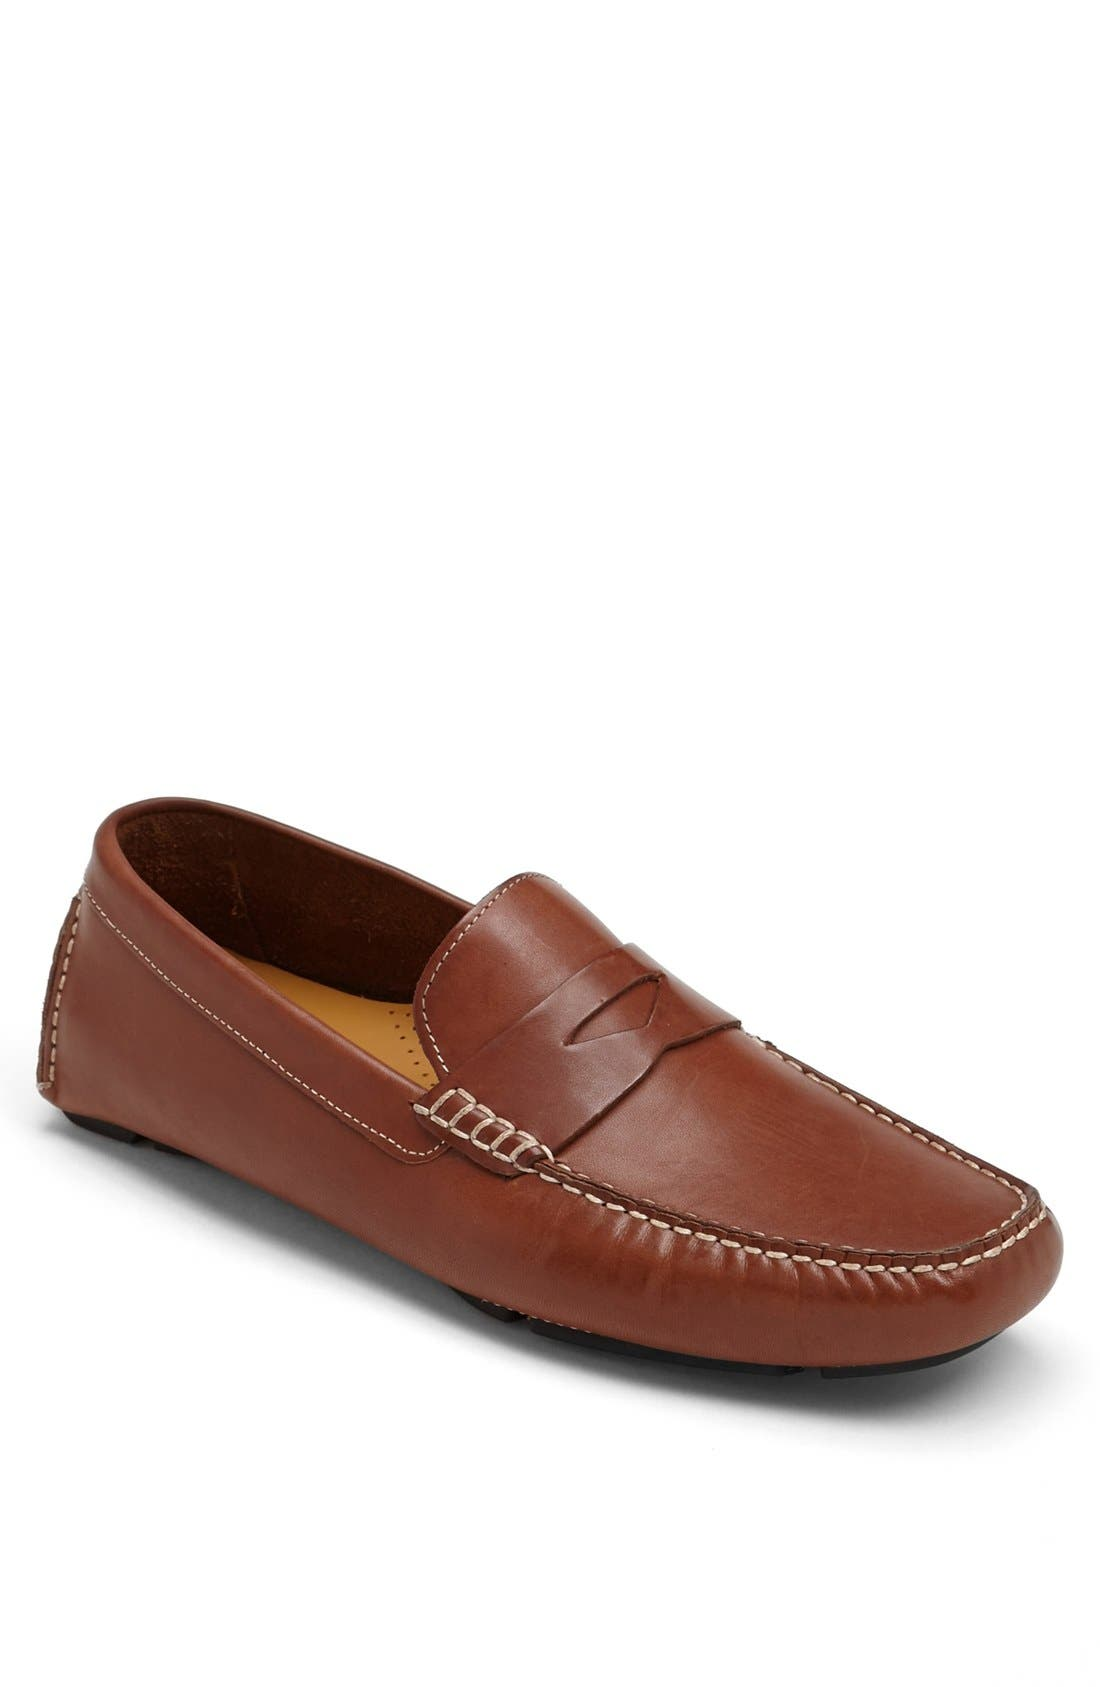 Alternate Image 1 Selected - Cole Haan 'Howland' Penny Loafer   (Men)